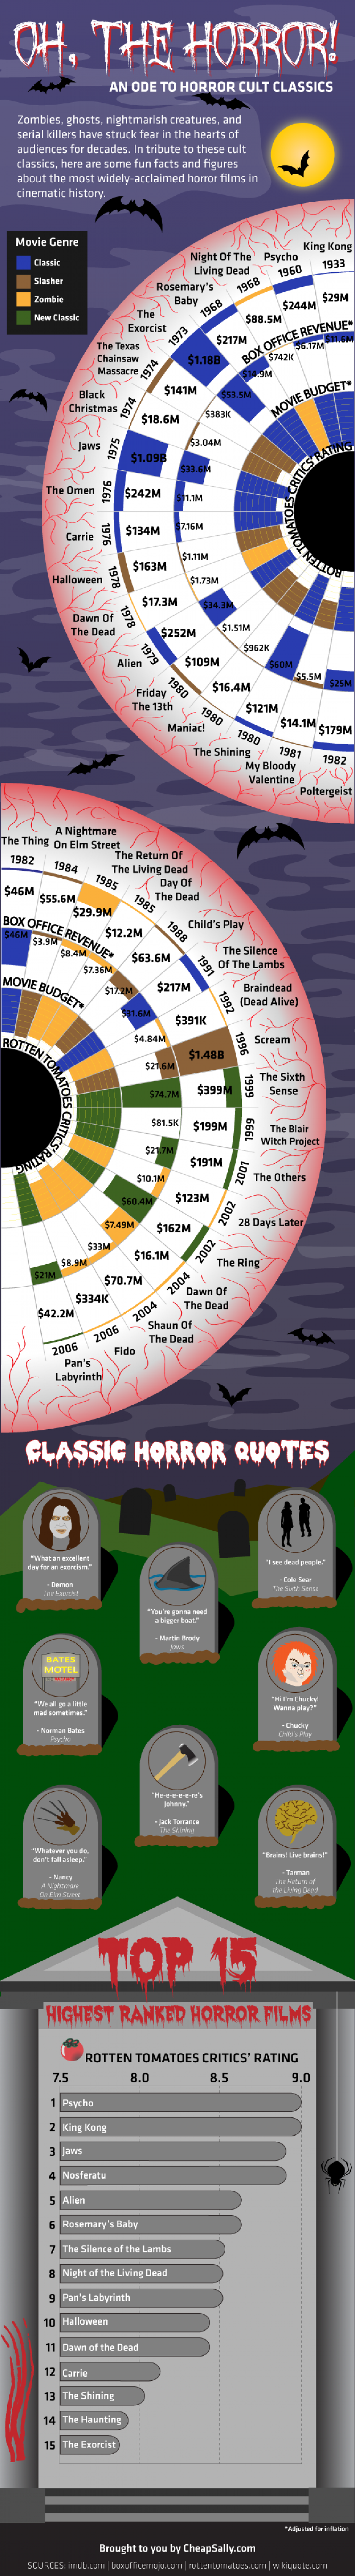 Oh, The Horror! An Ode to Horror Cult Classics Infographic